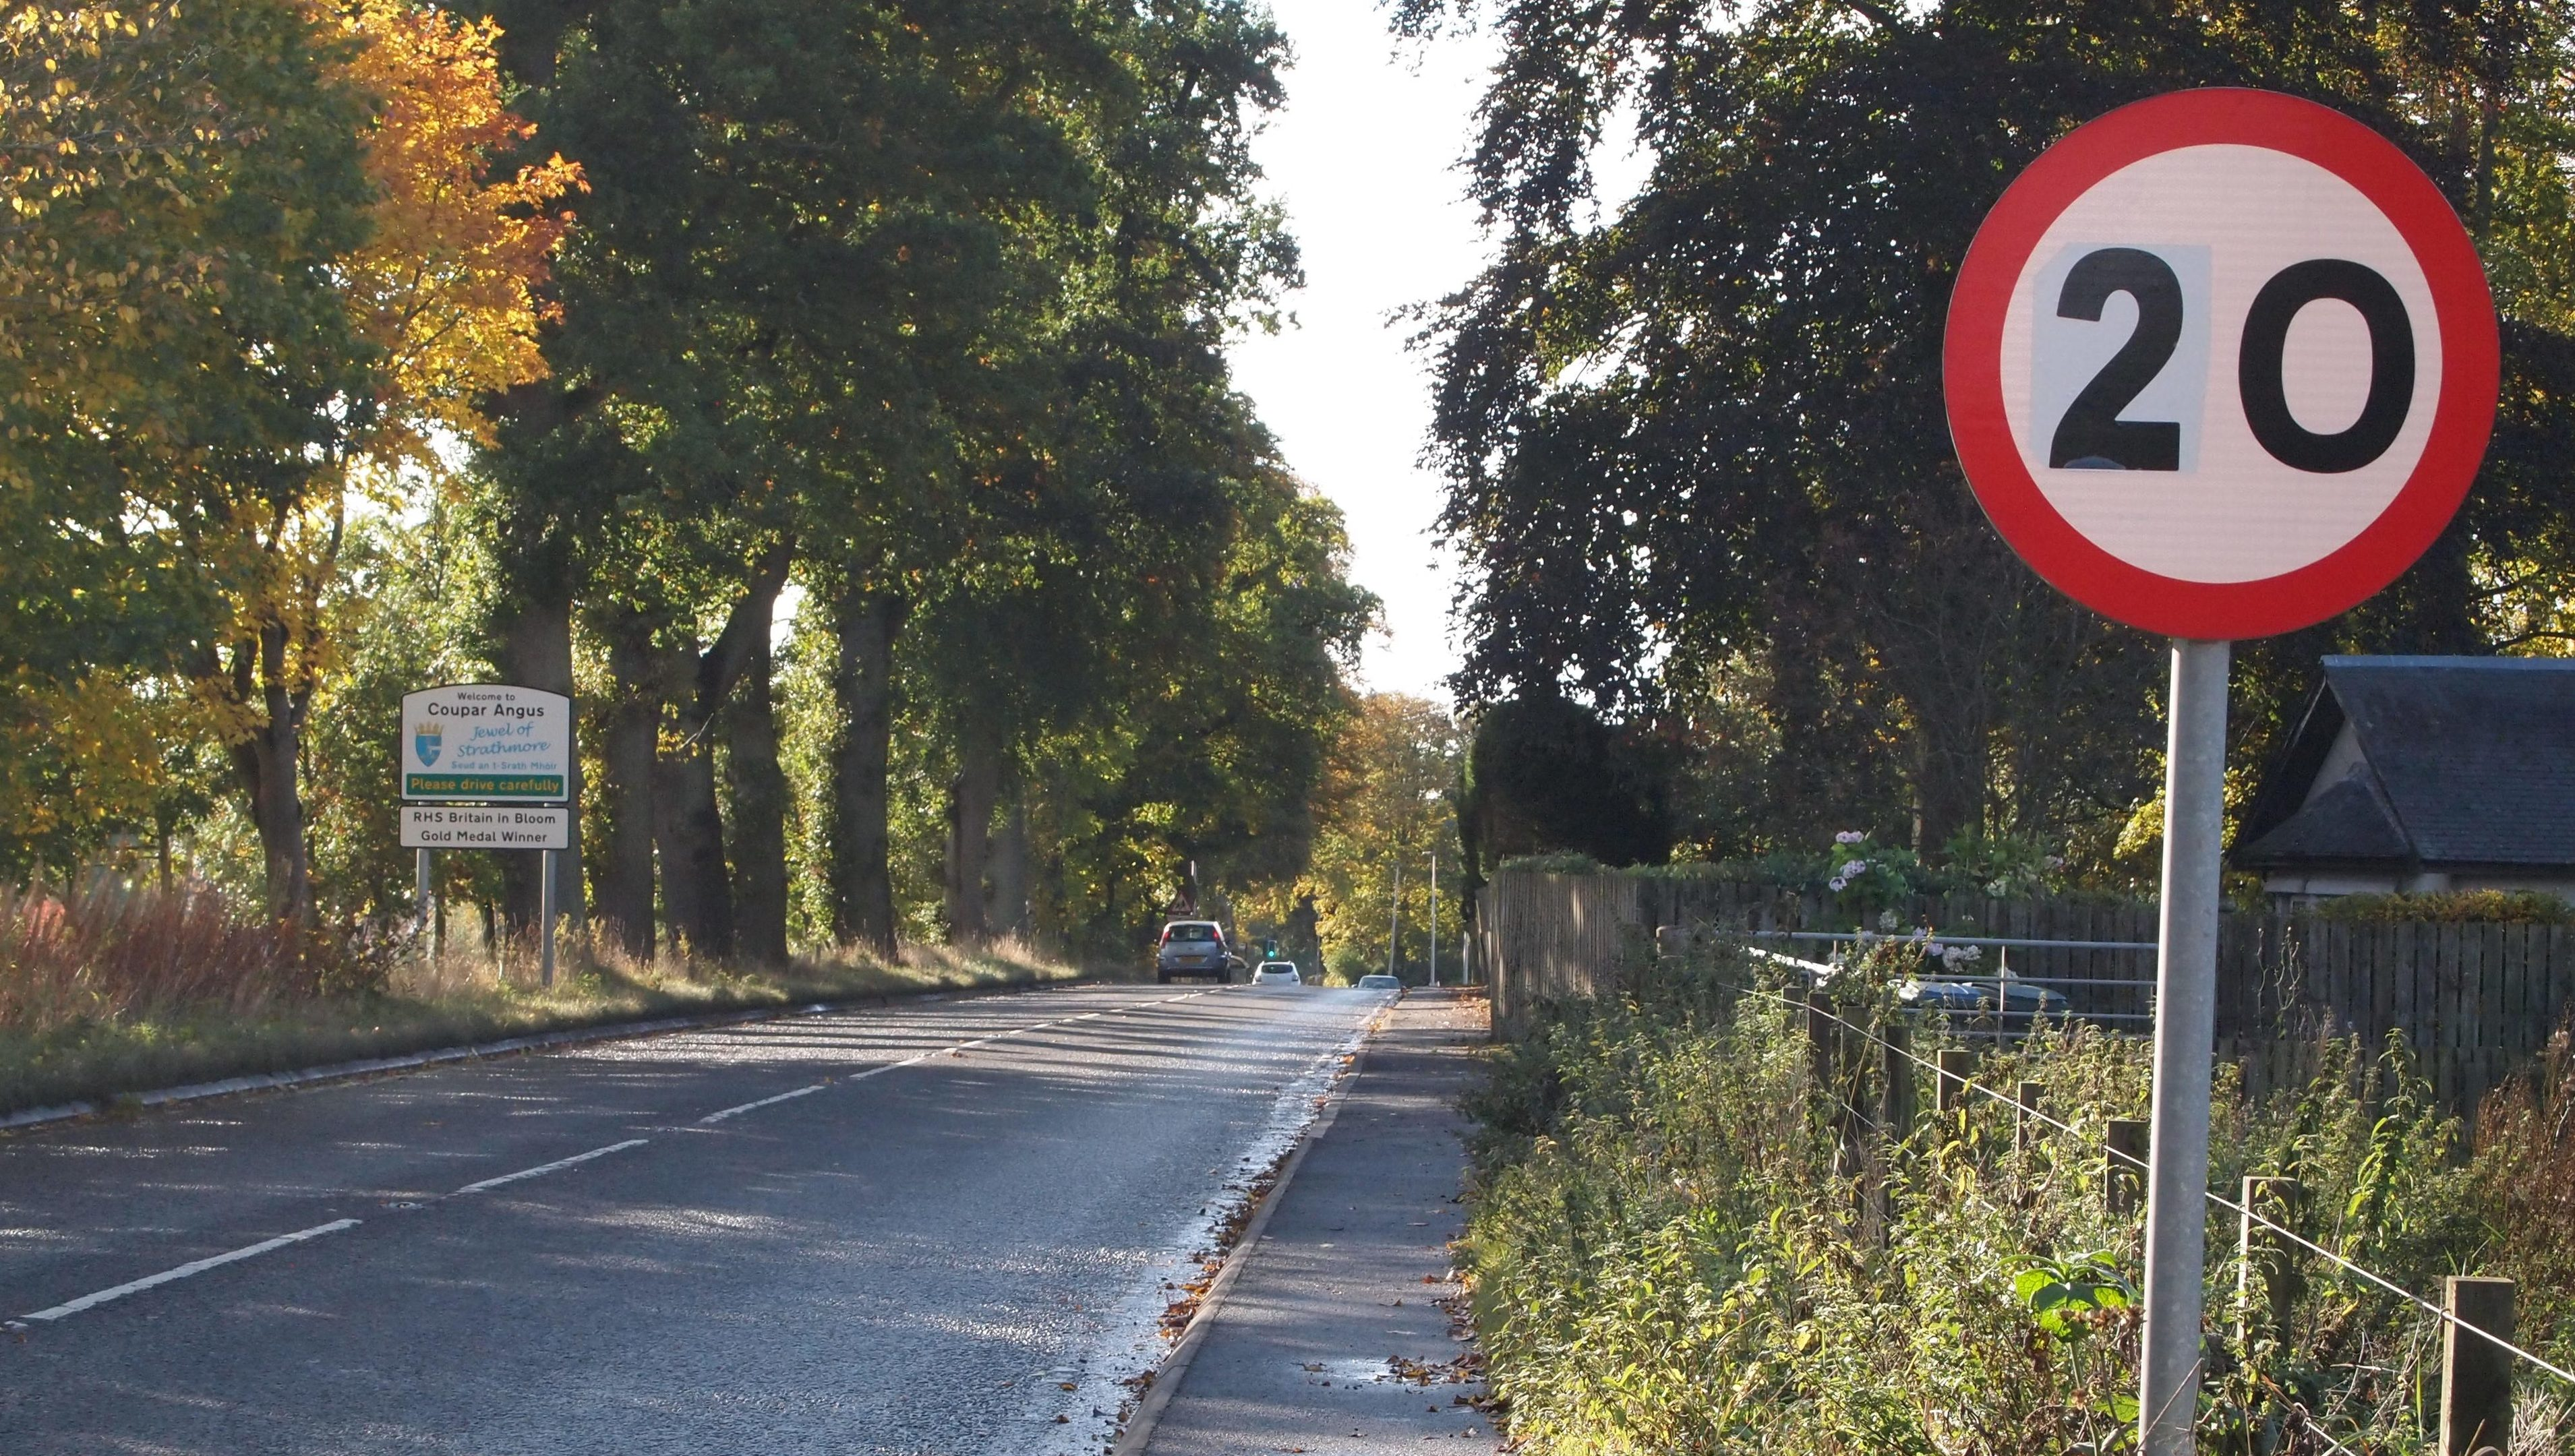 Hoax 20mph signs were put up in Coupar Angus by safety campaigners.